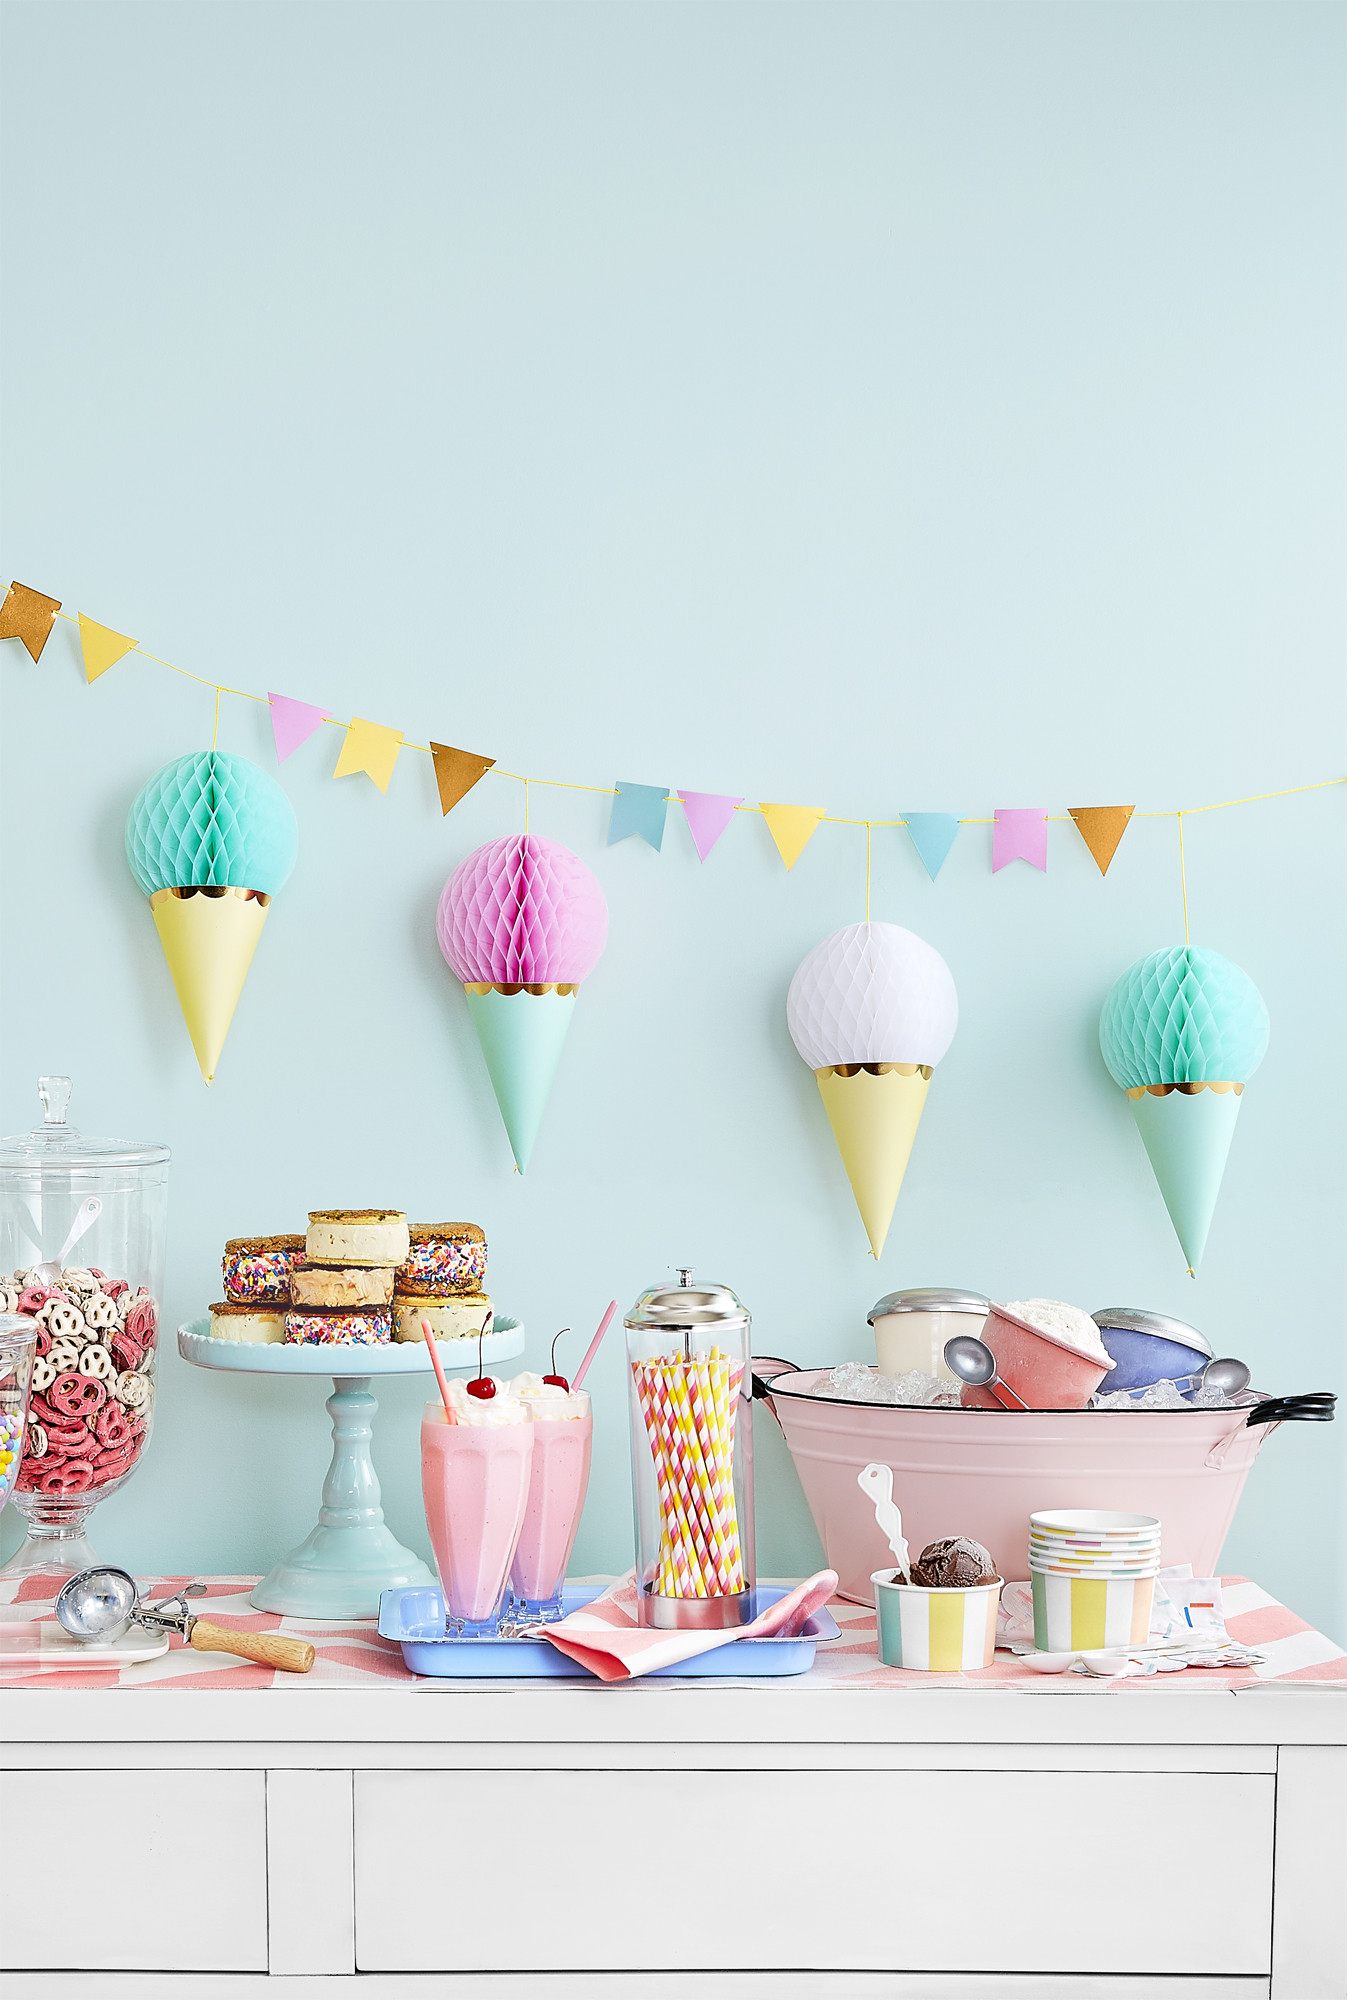 Best ideas about Diy Birthday Decorations . Save or Pin 15 DIY Birthday Party Decoration Ideas Cute Homemade Now.